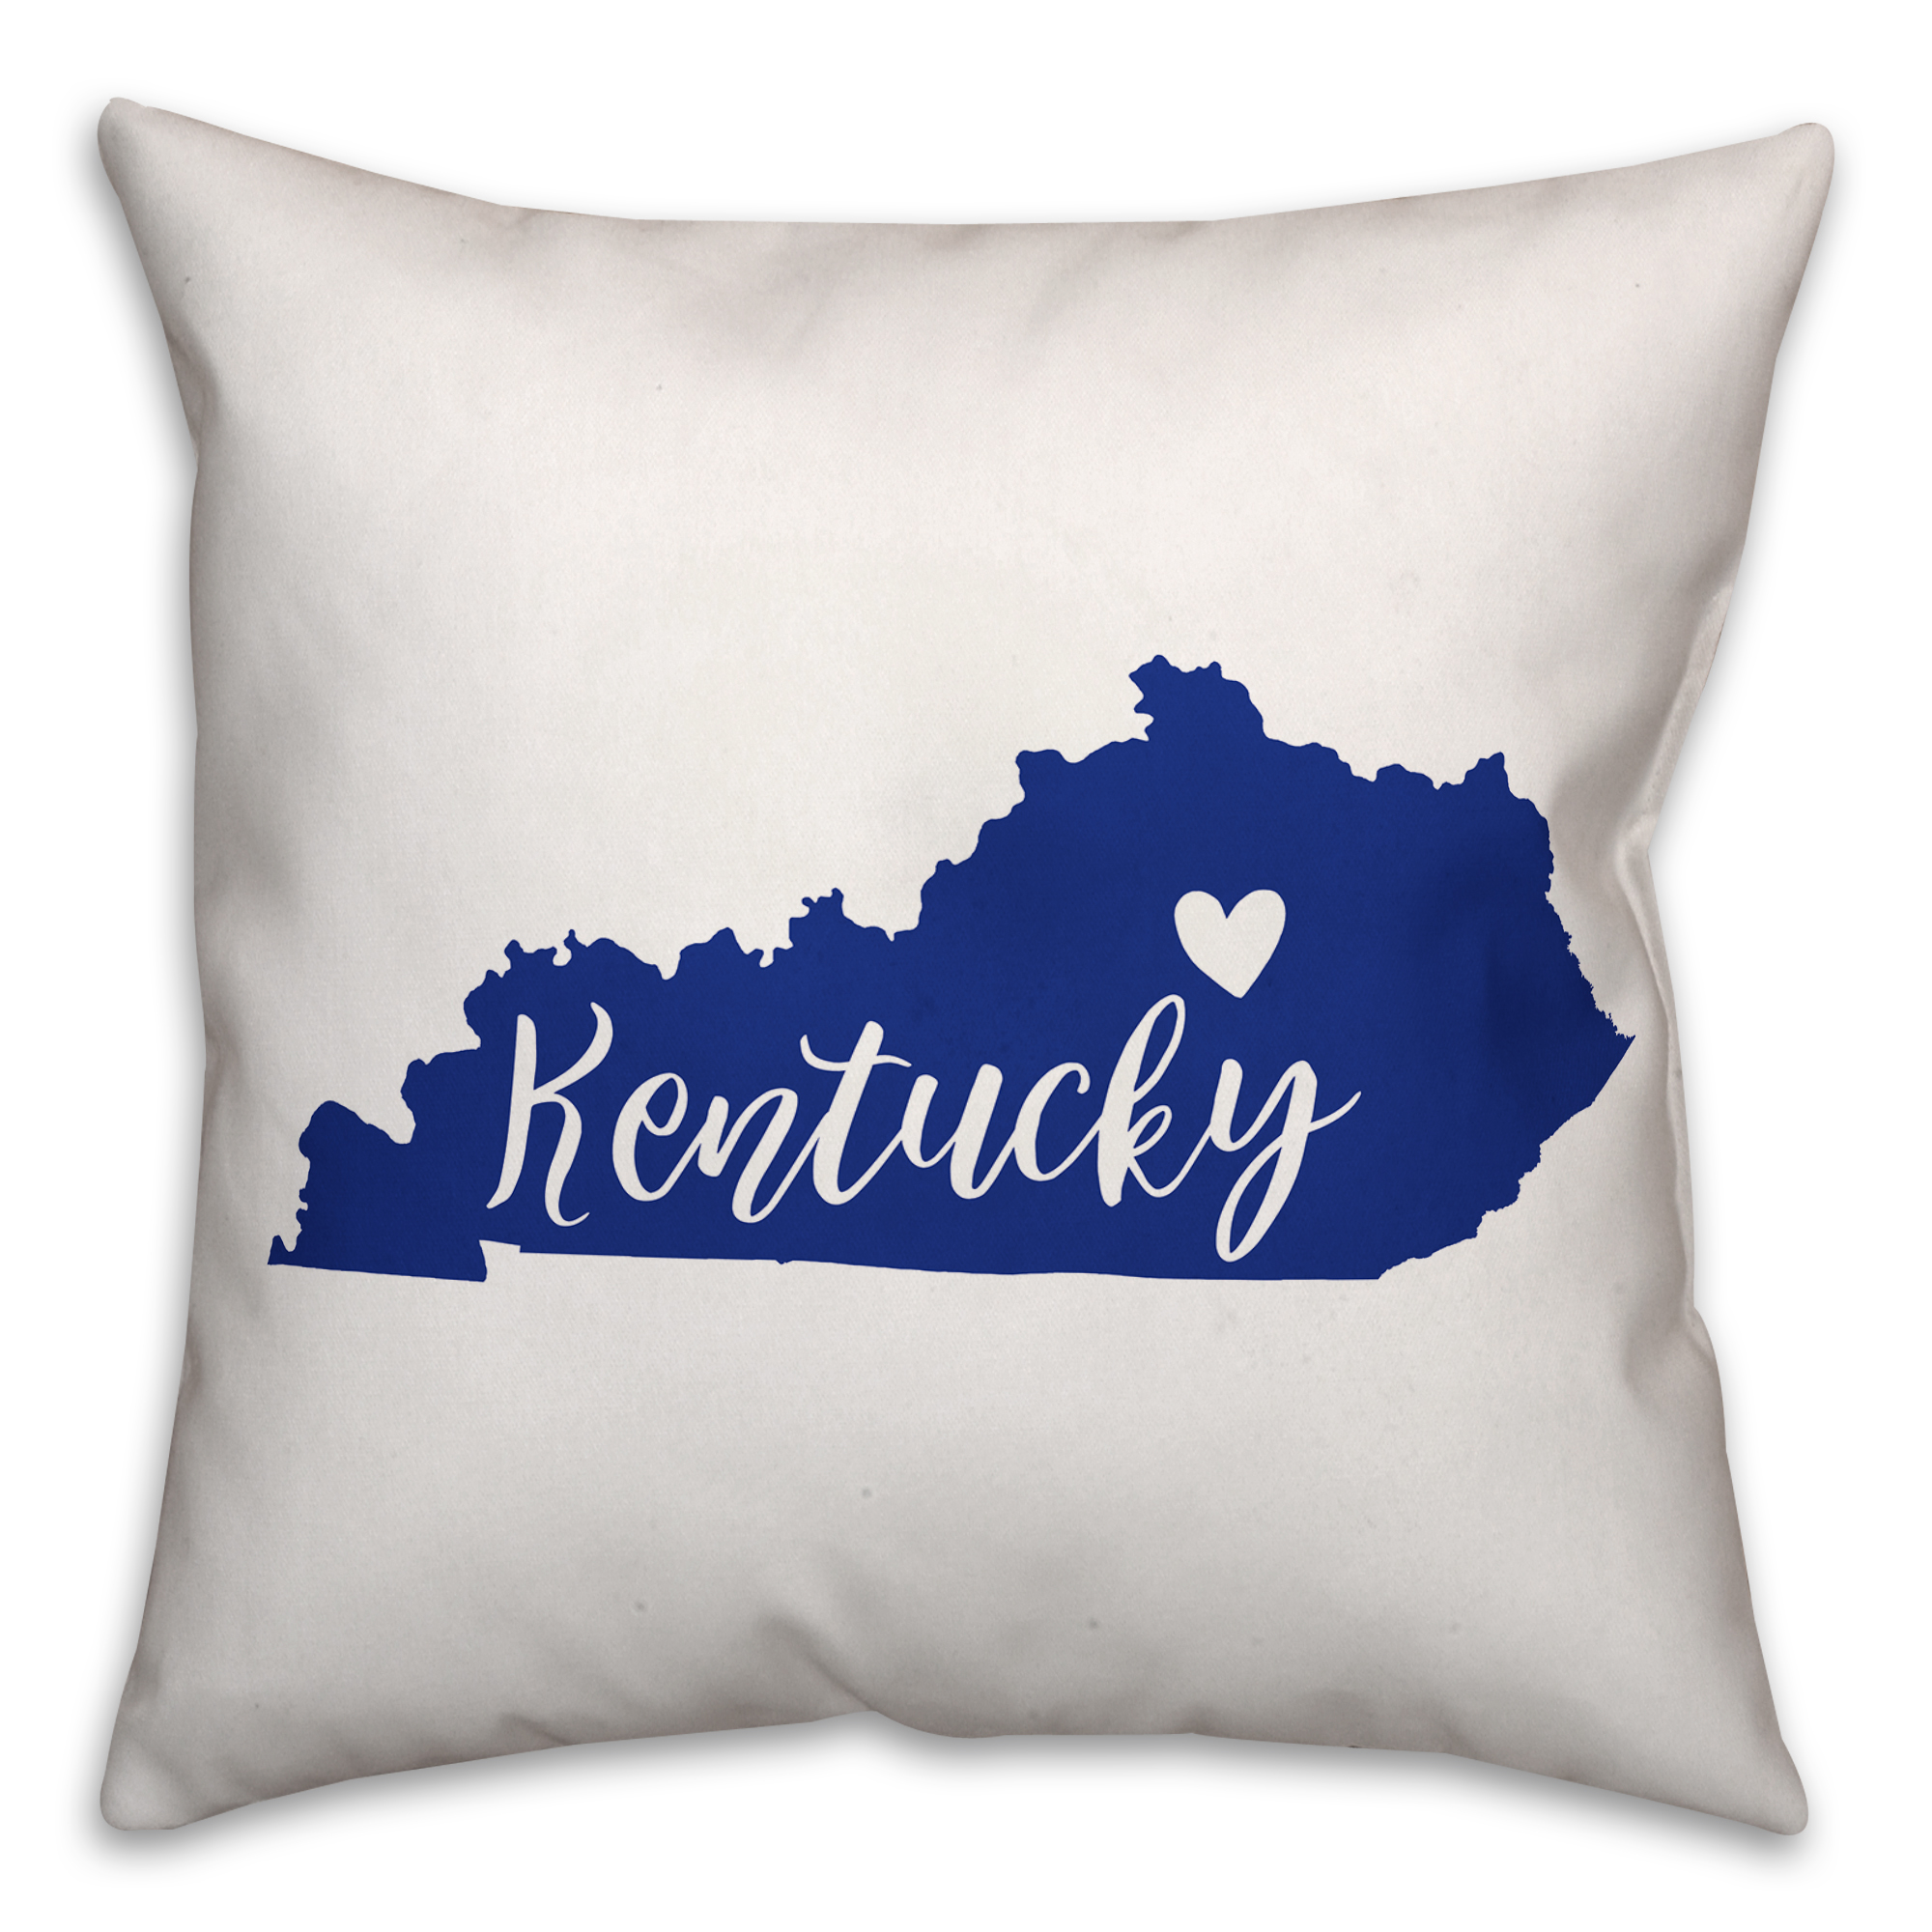 Blue and White Kentucky Pride 16x16 Spun Poly Pillow